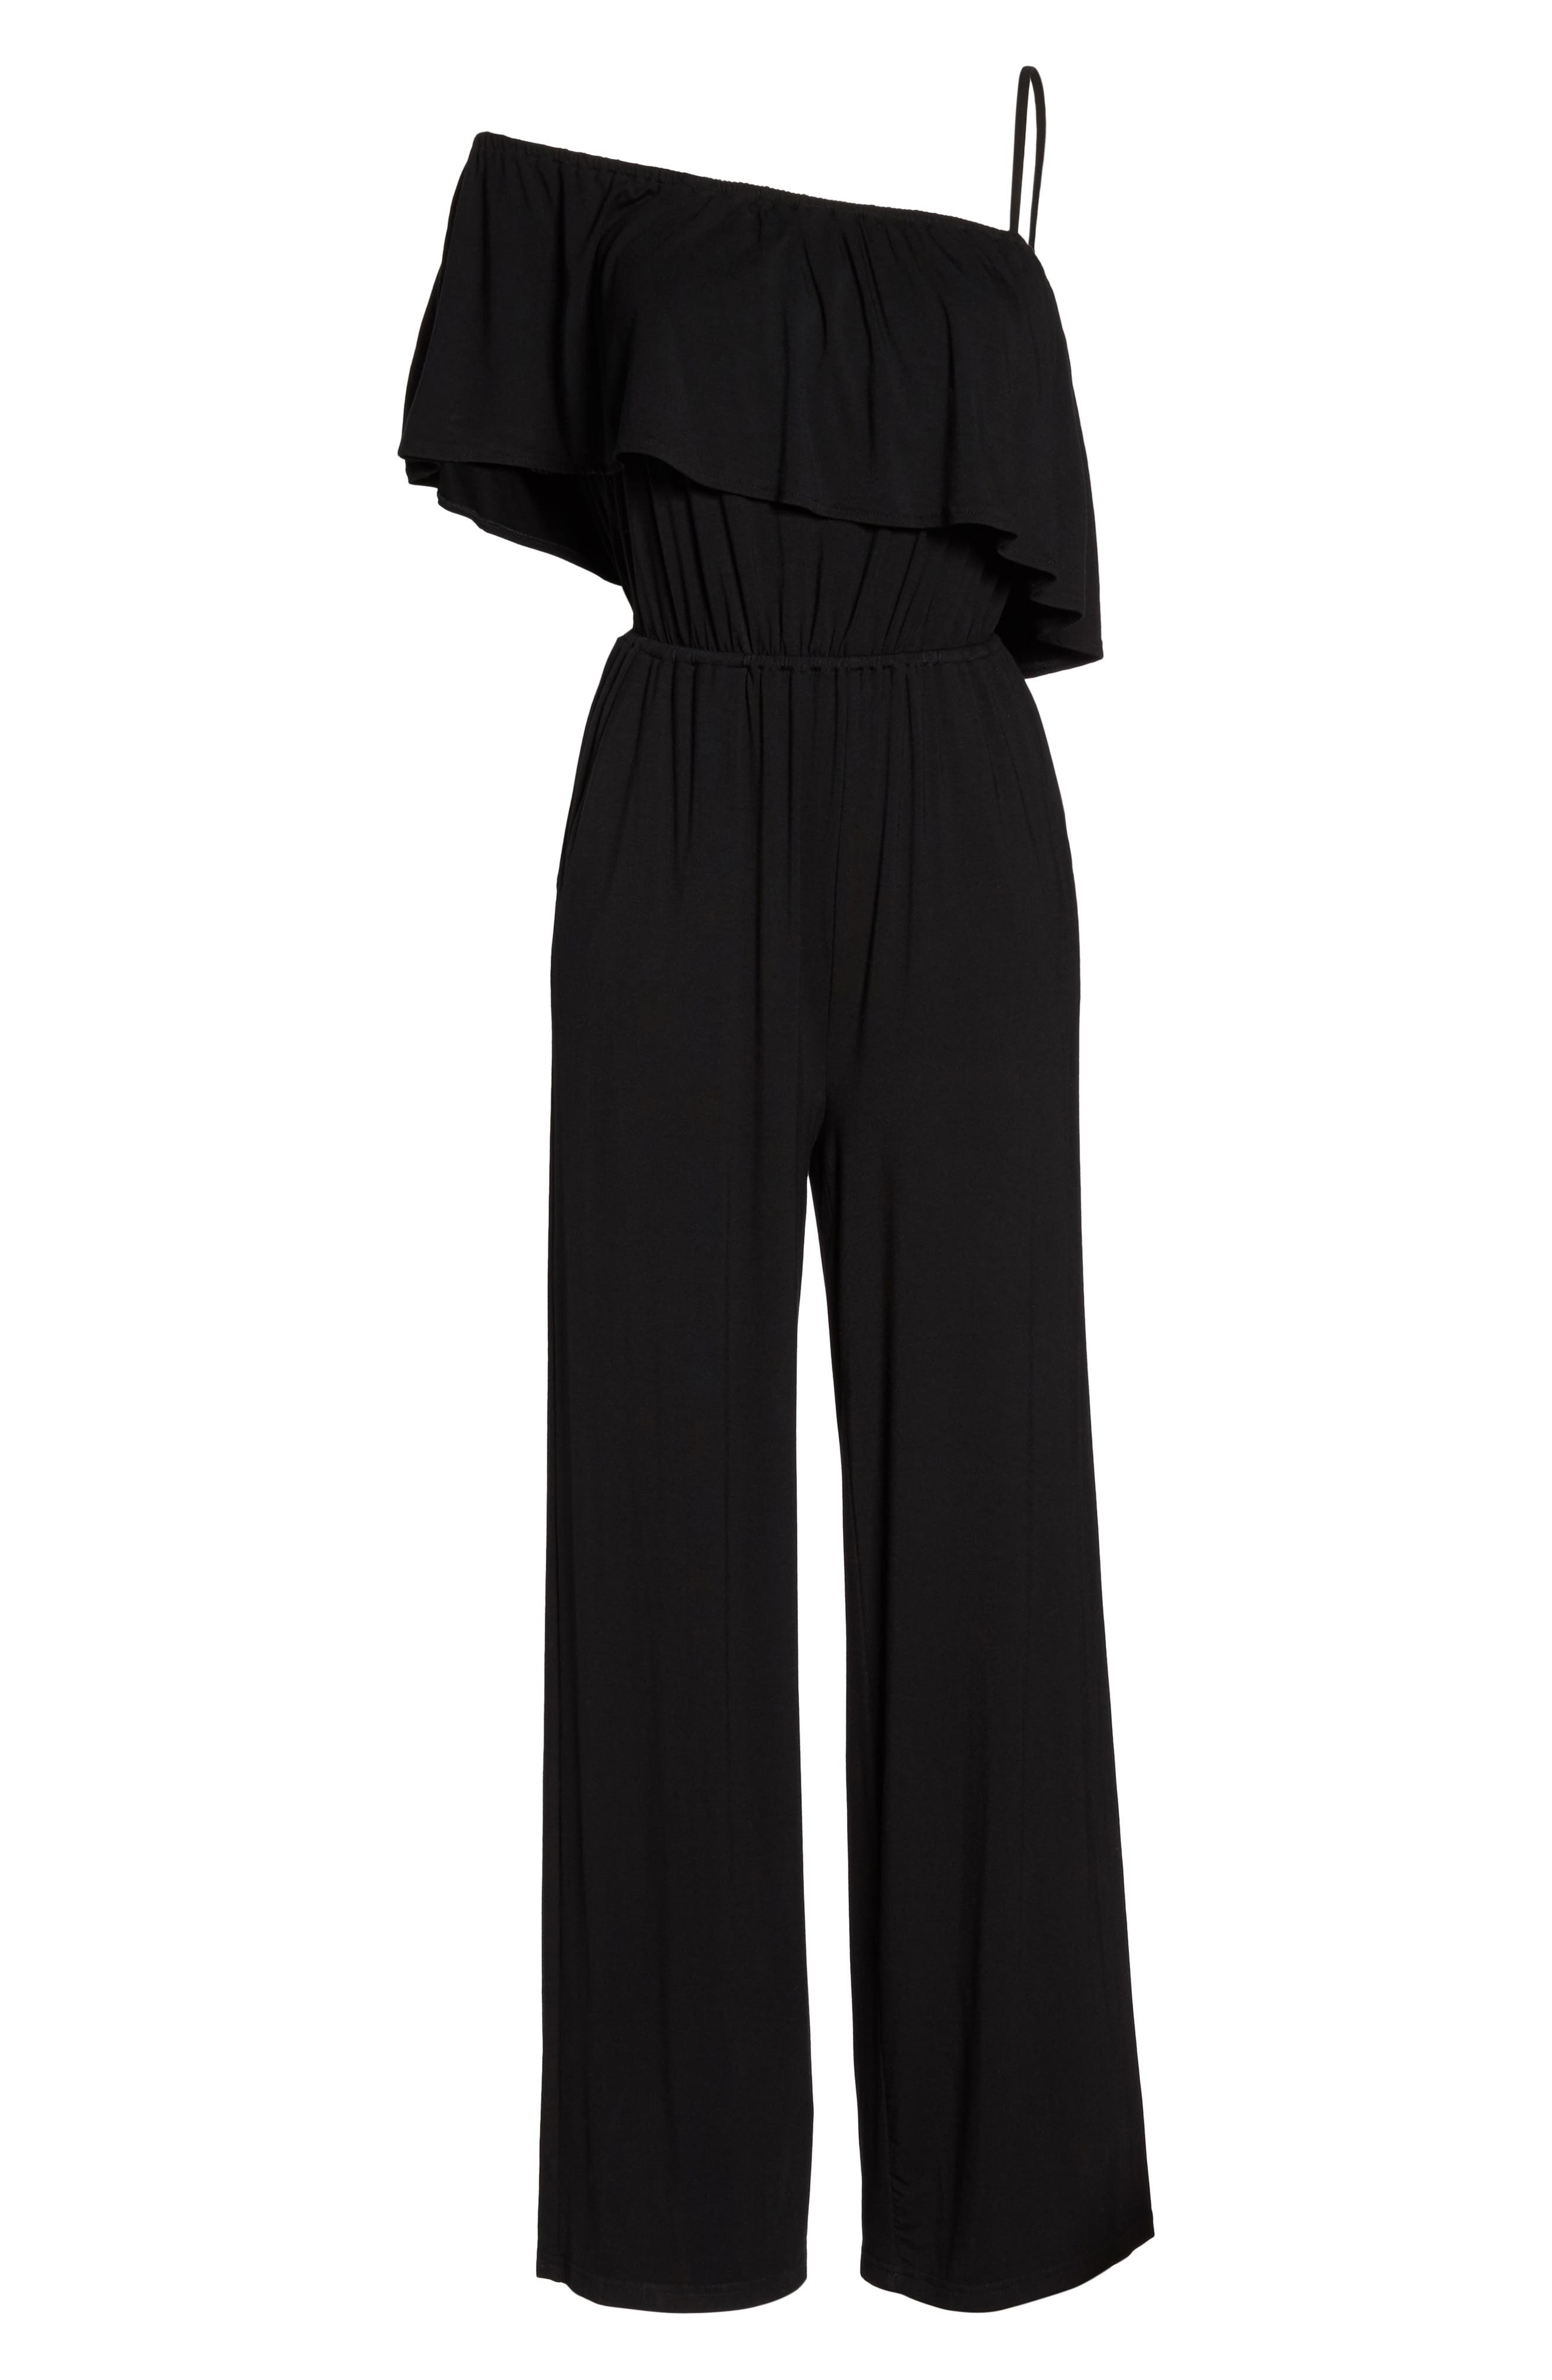 Mayana Jumpsuit,                             Alternate thumbnail 6, color,                             001